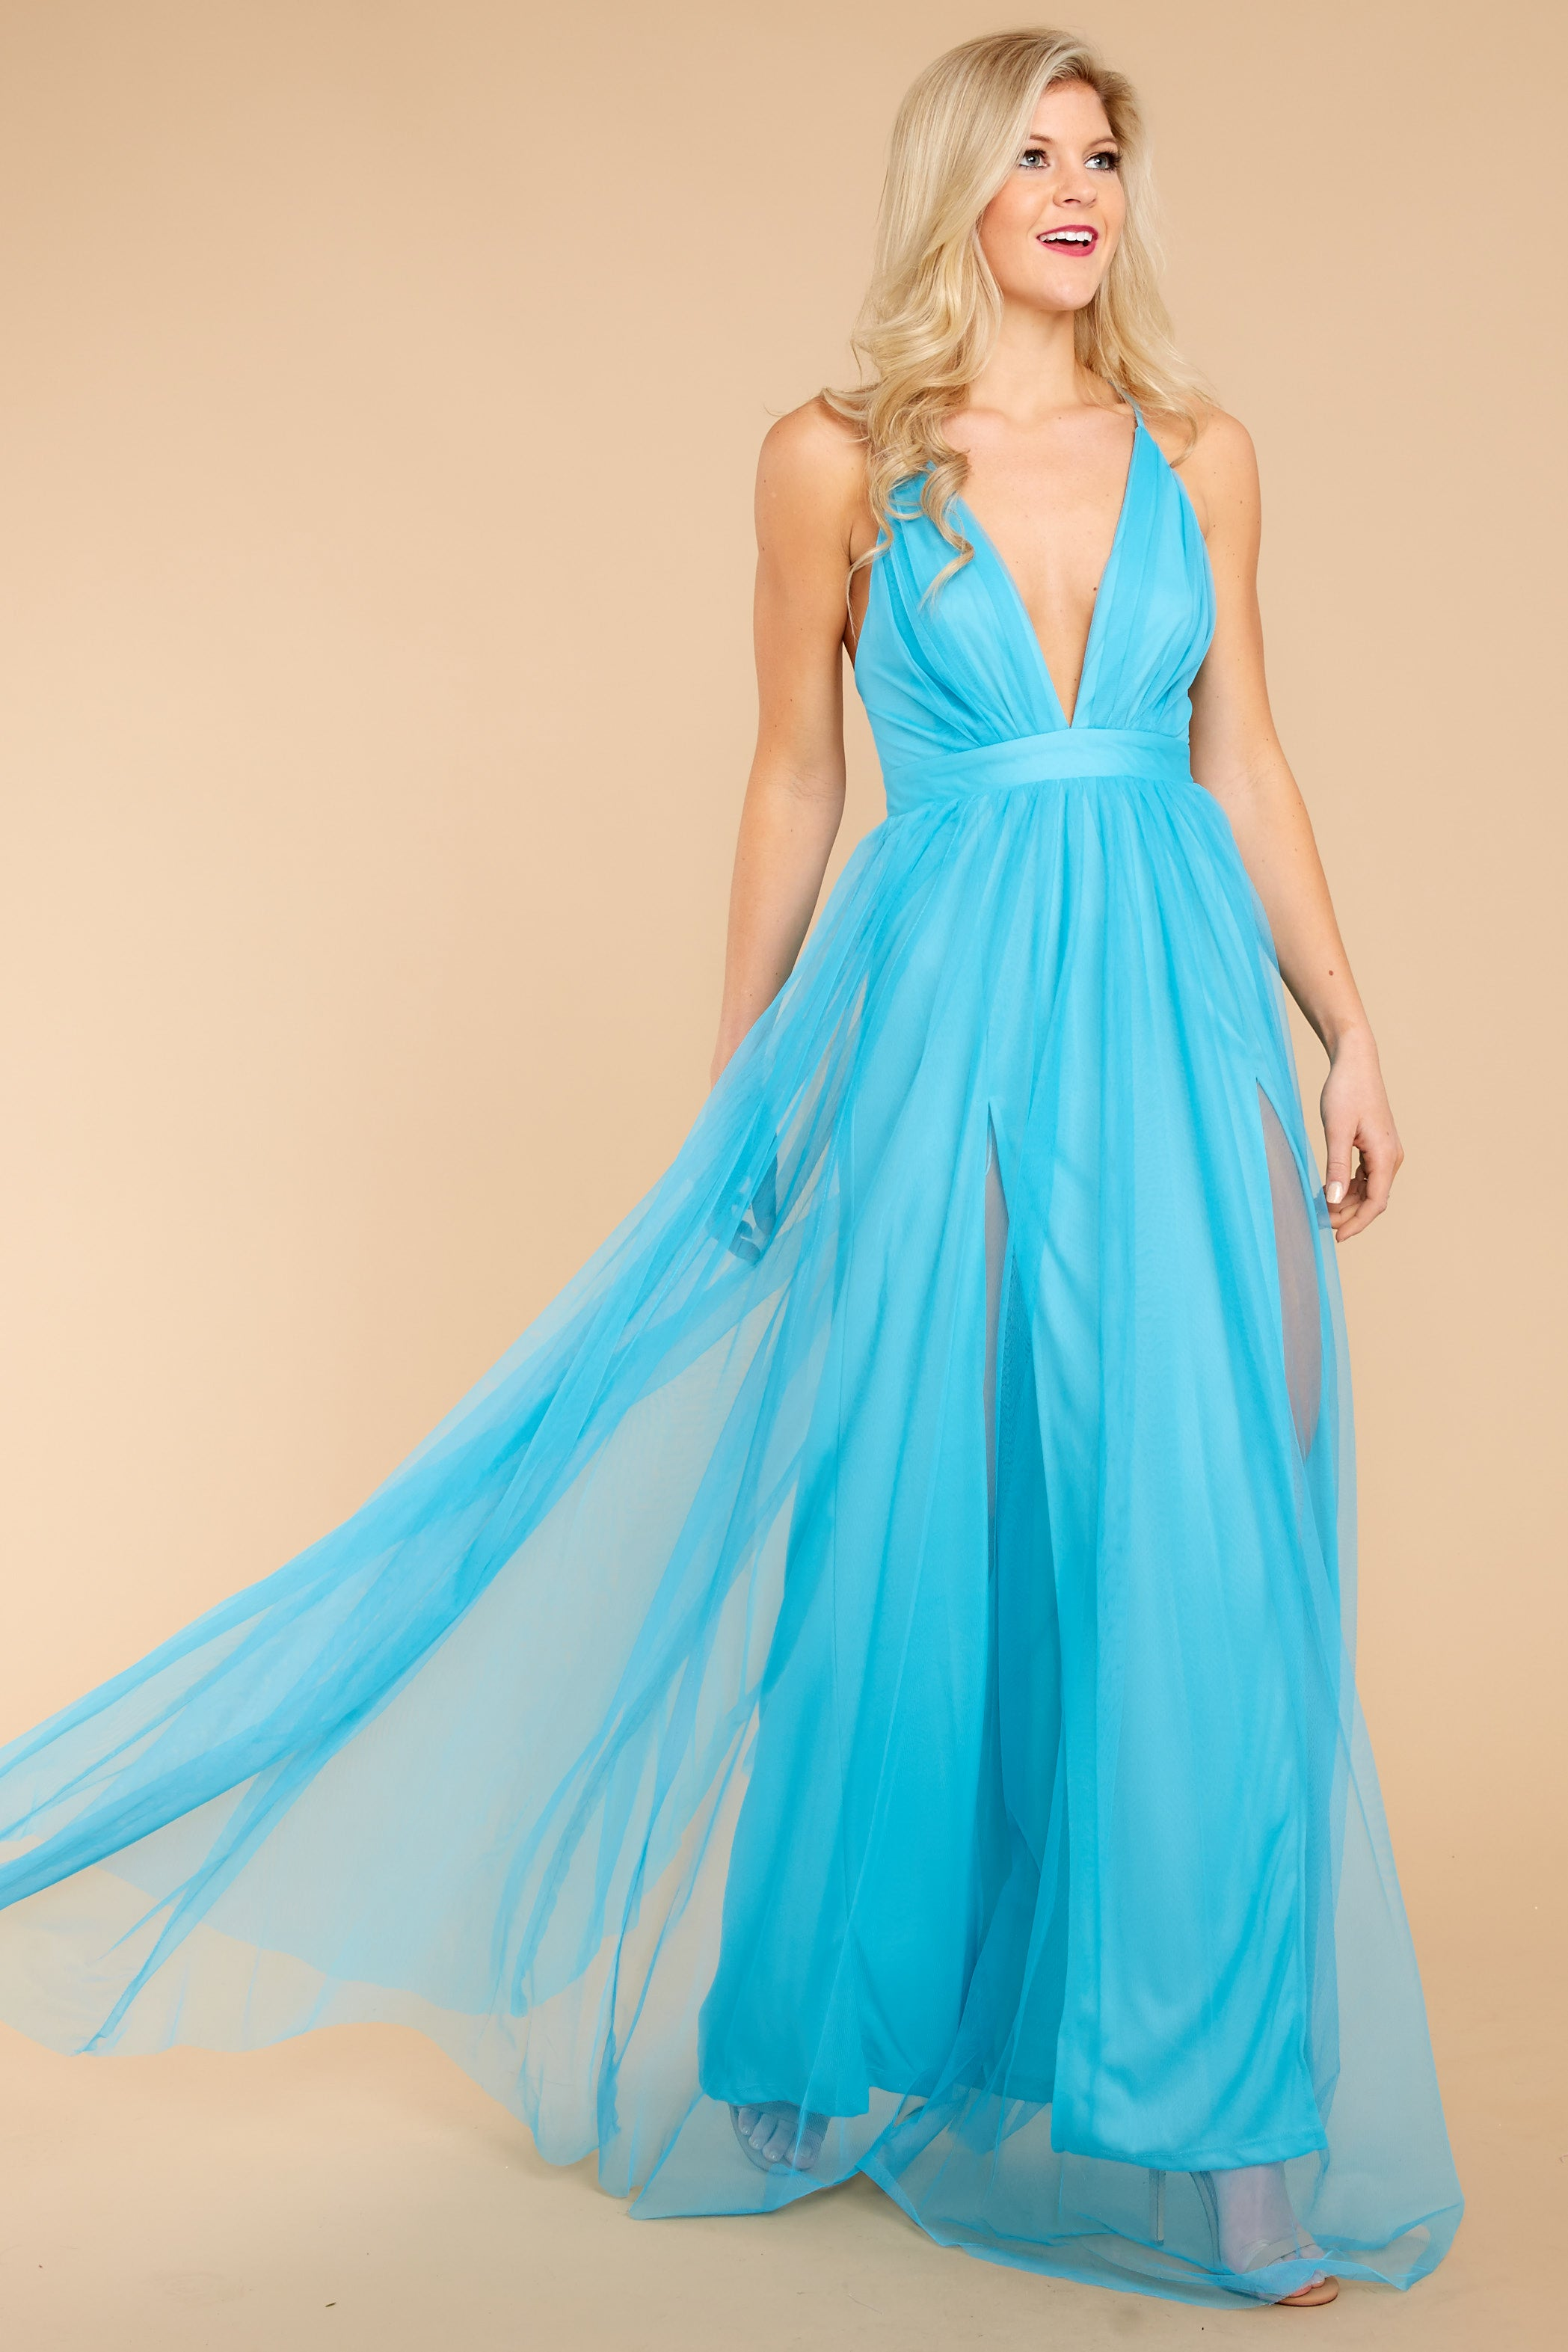 Sexy Blue Dress - Maxi Dress - Dress - $66.00 – Red Dress Boutique